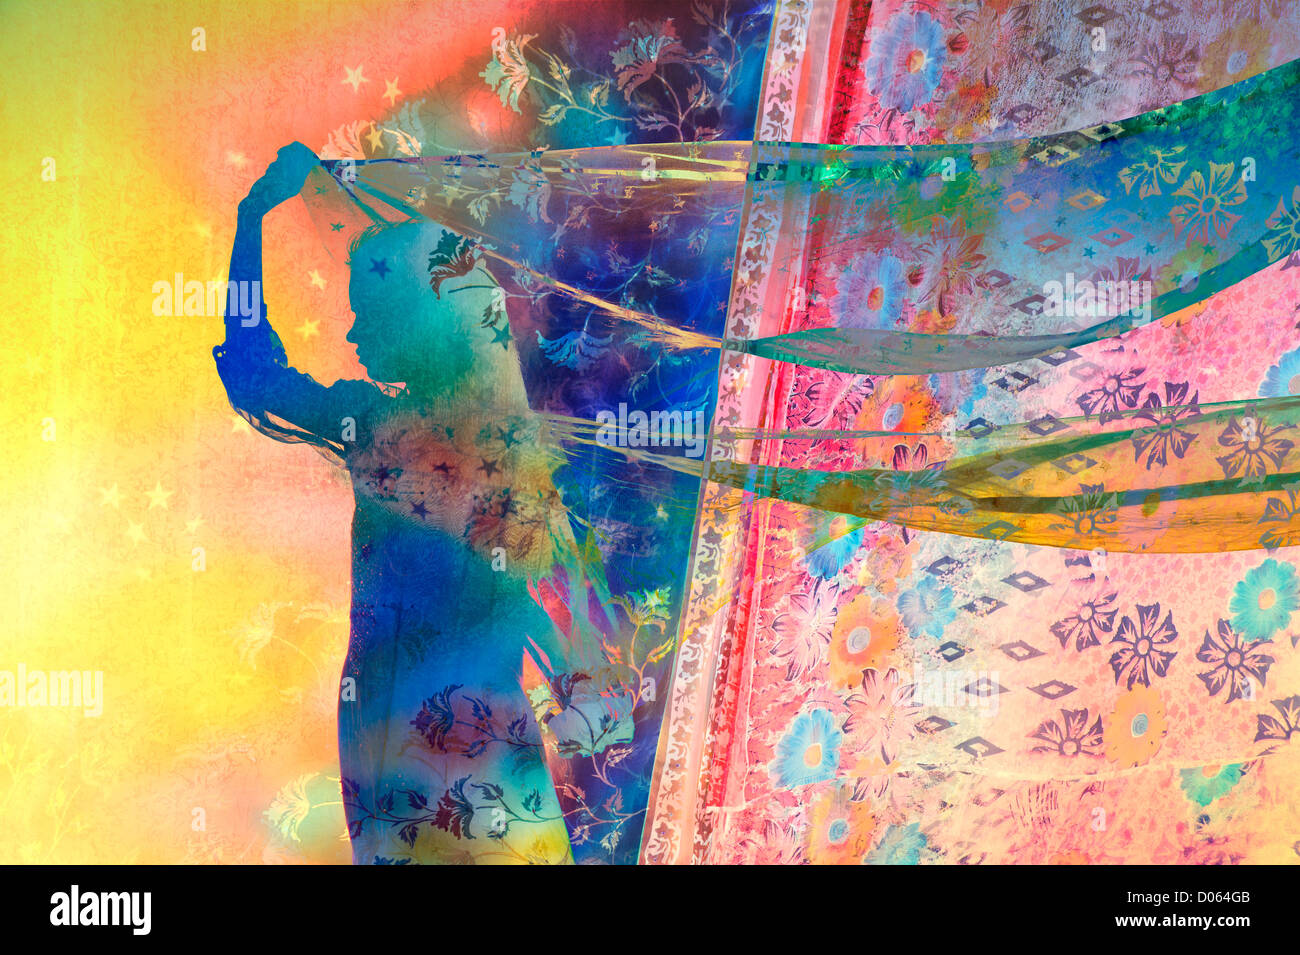 Indian girl with star and floral patterned veils in the wind. Silhouette. Colourful montage - Stock Image